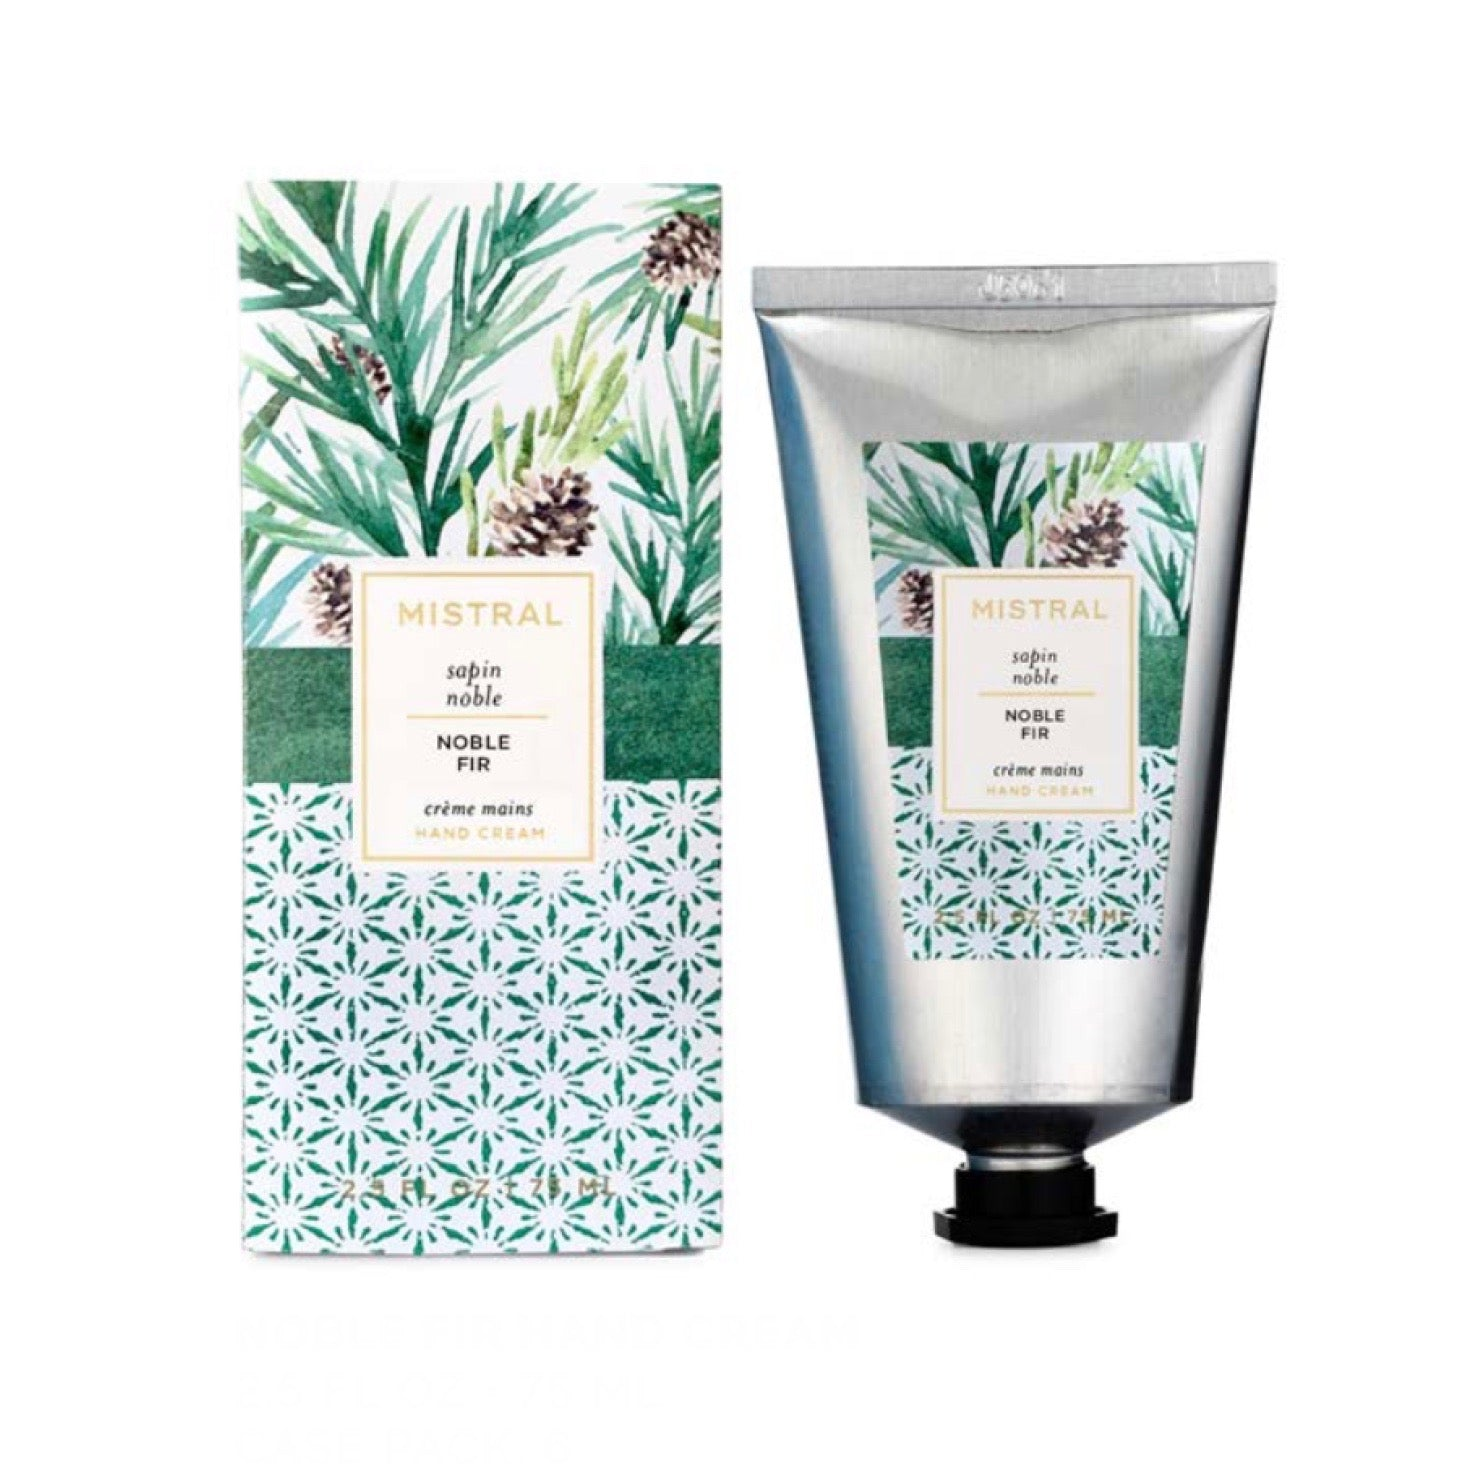 Mistral Limited Edition Holiday Hand Cream - Noble Fir